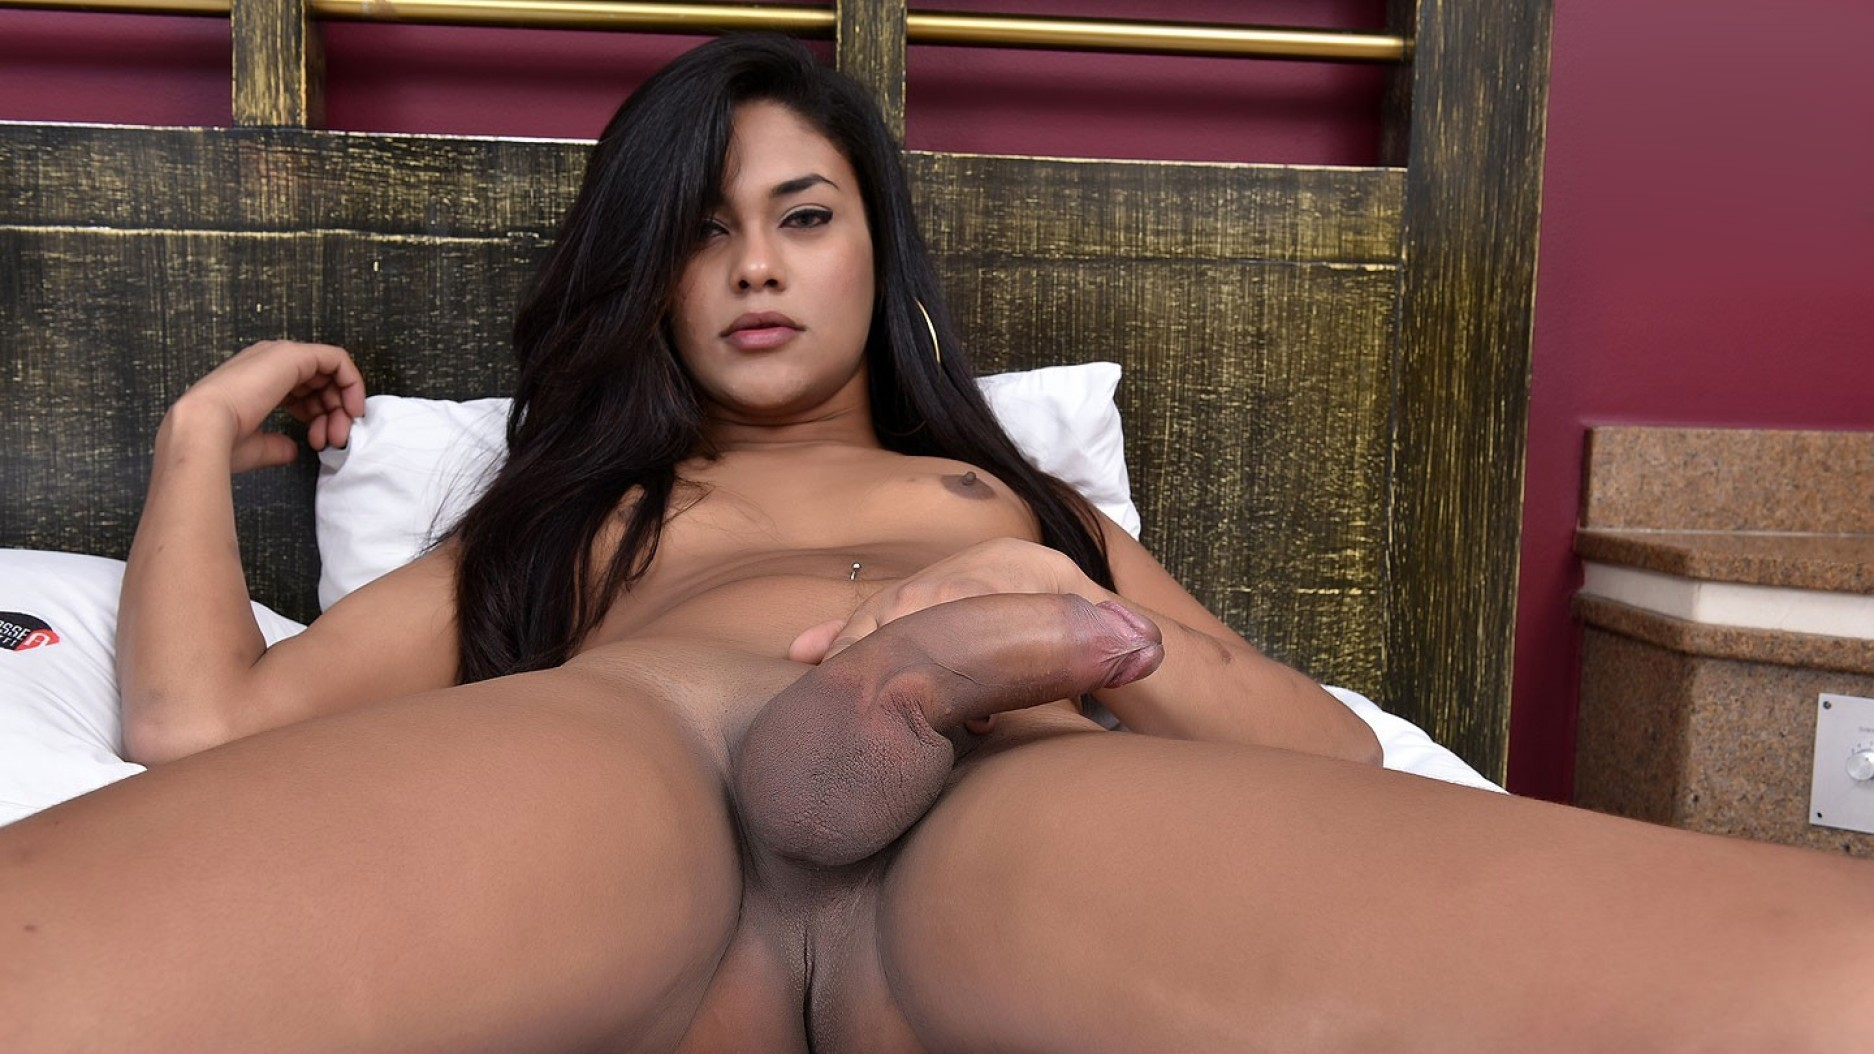 Amateur Sex Pictures Free Shemale